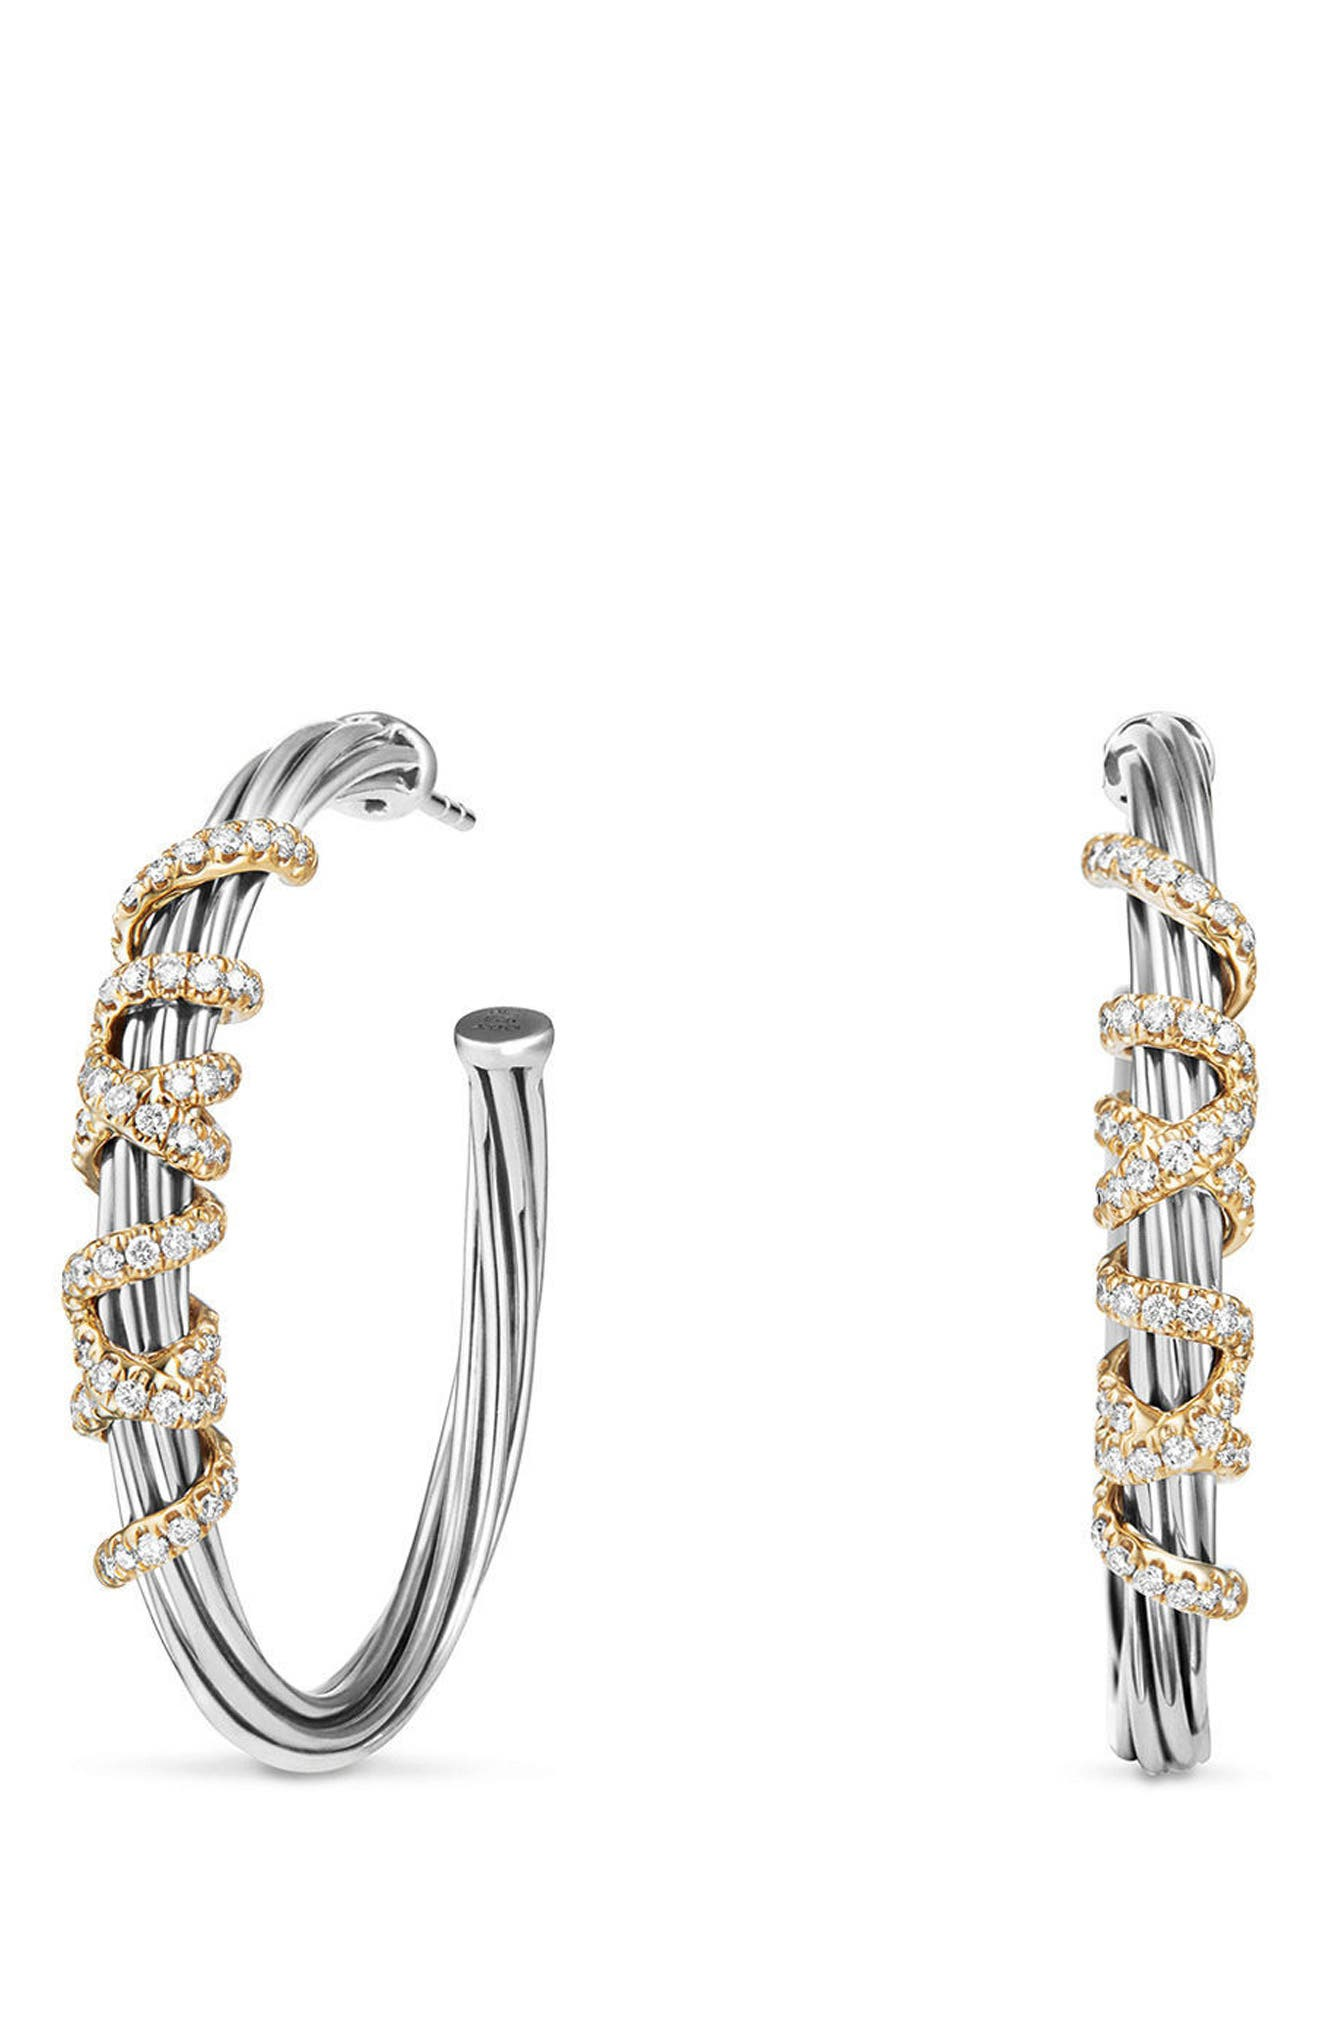 Helena Large Hoop Earrings with Diamonds & 18K Gold,                             Main thumbnail 1, color,                             SILVER/ GOLD